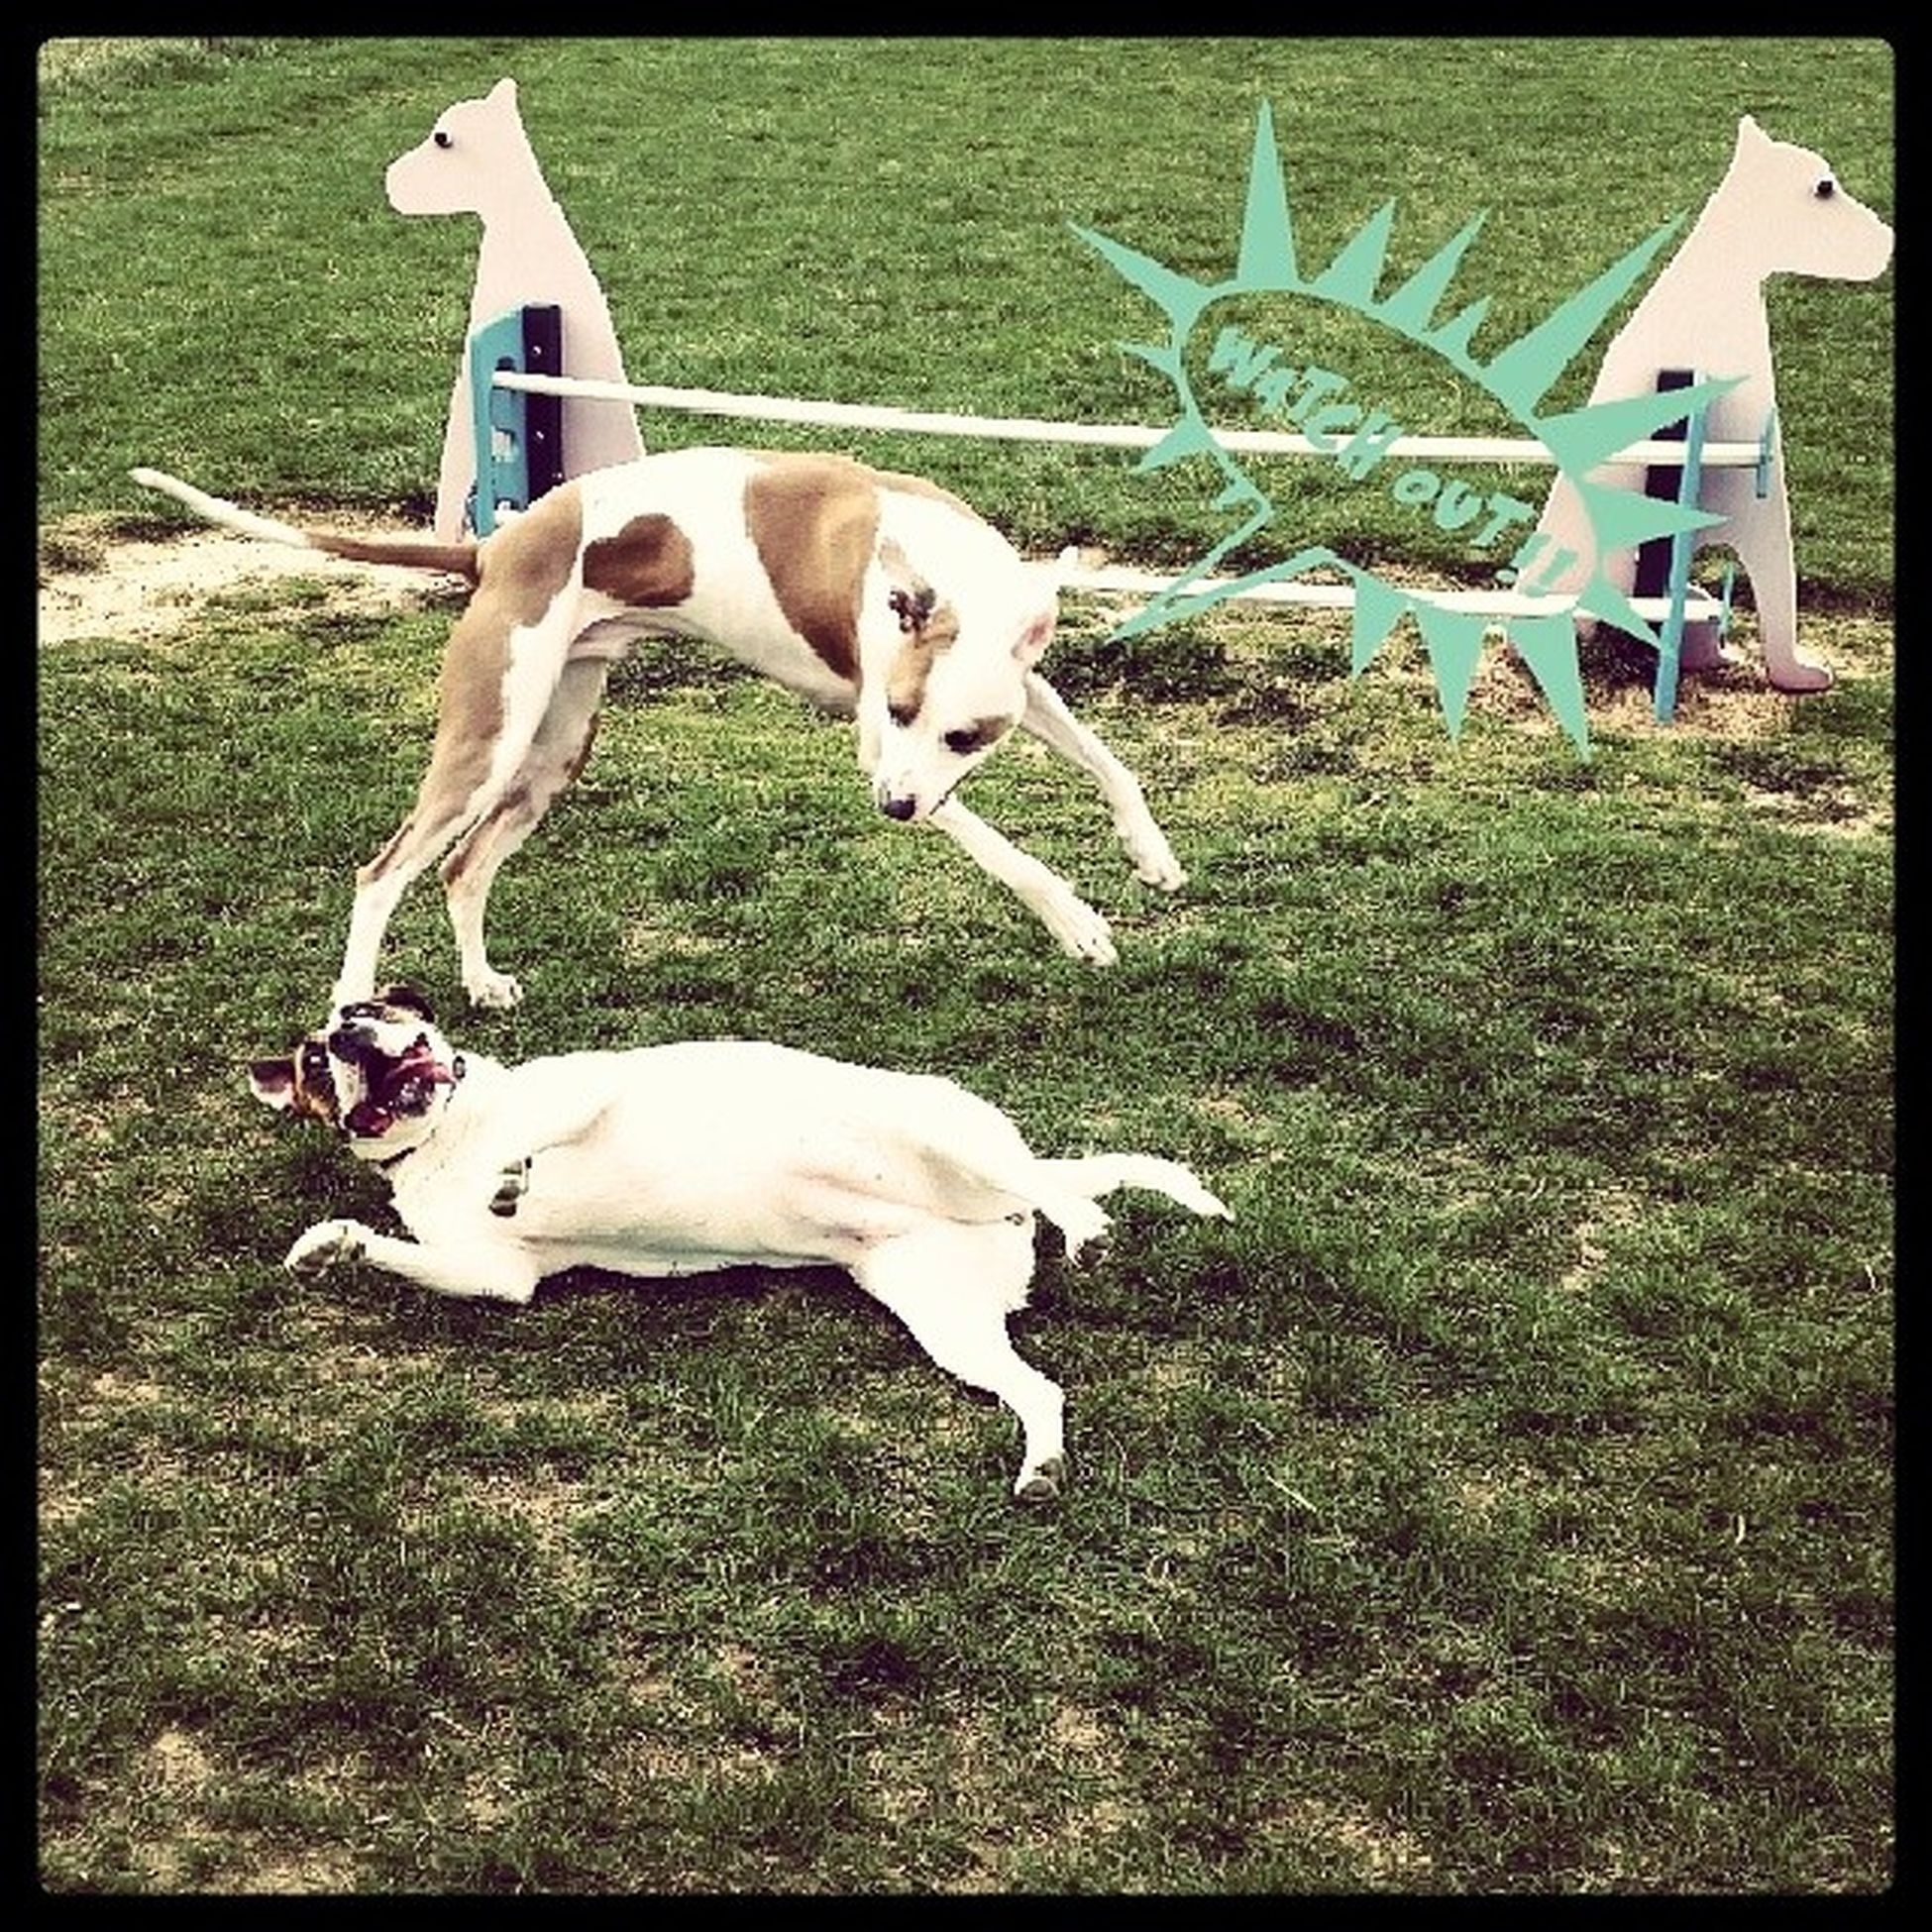 Misscharlie and Mrmitch enjoy a day at the Dogpark .